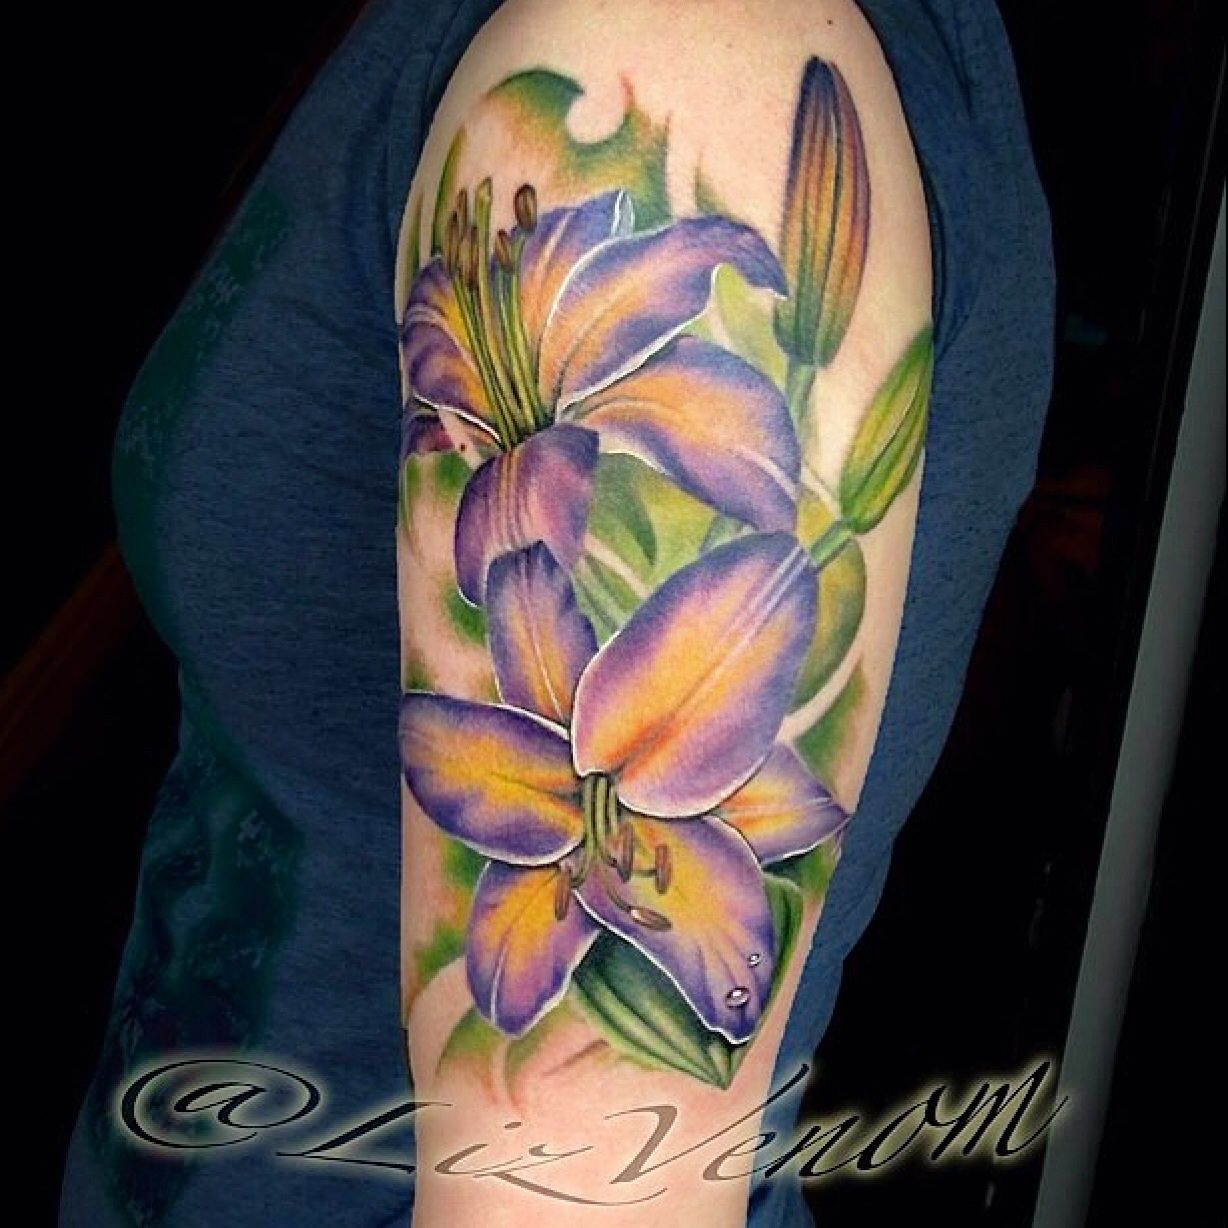 Beautiful realistic colour tattoo of lilies by lyz venom from